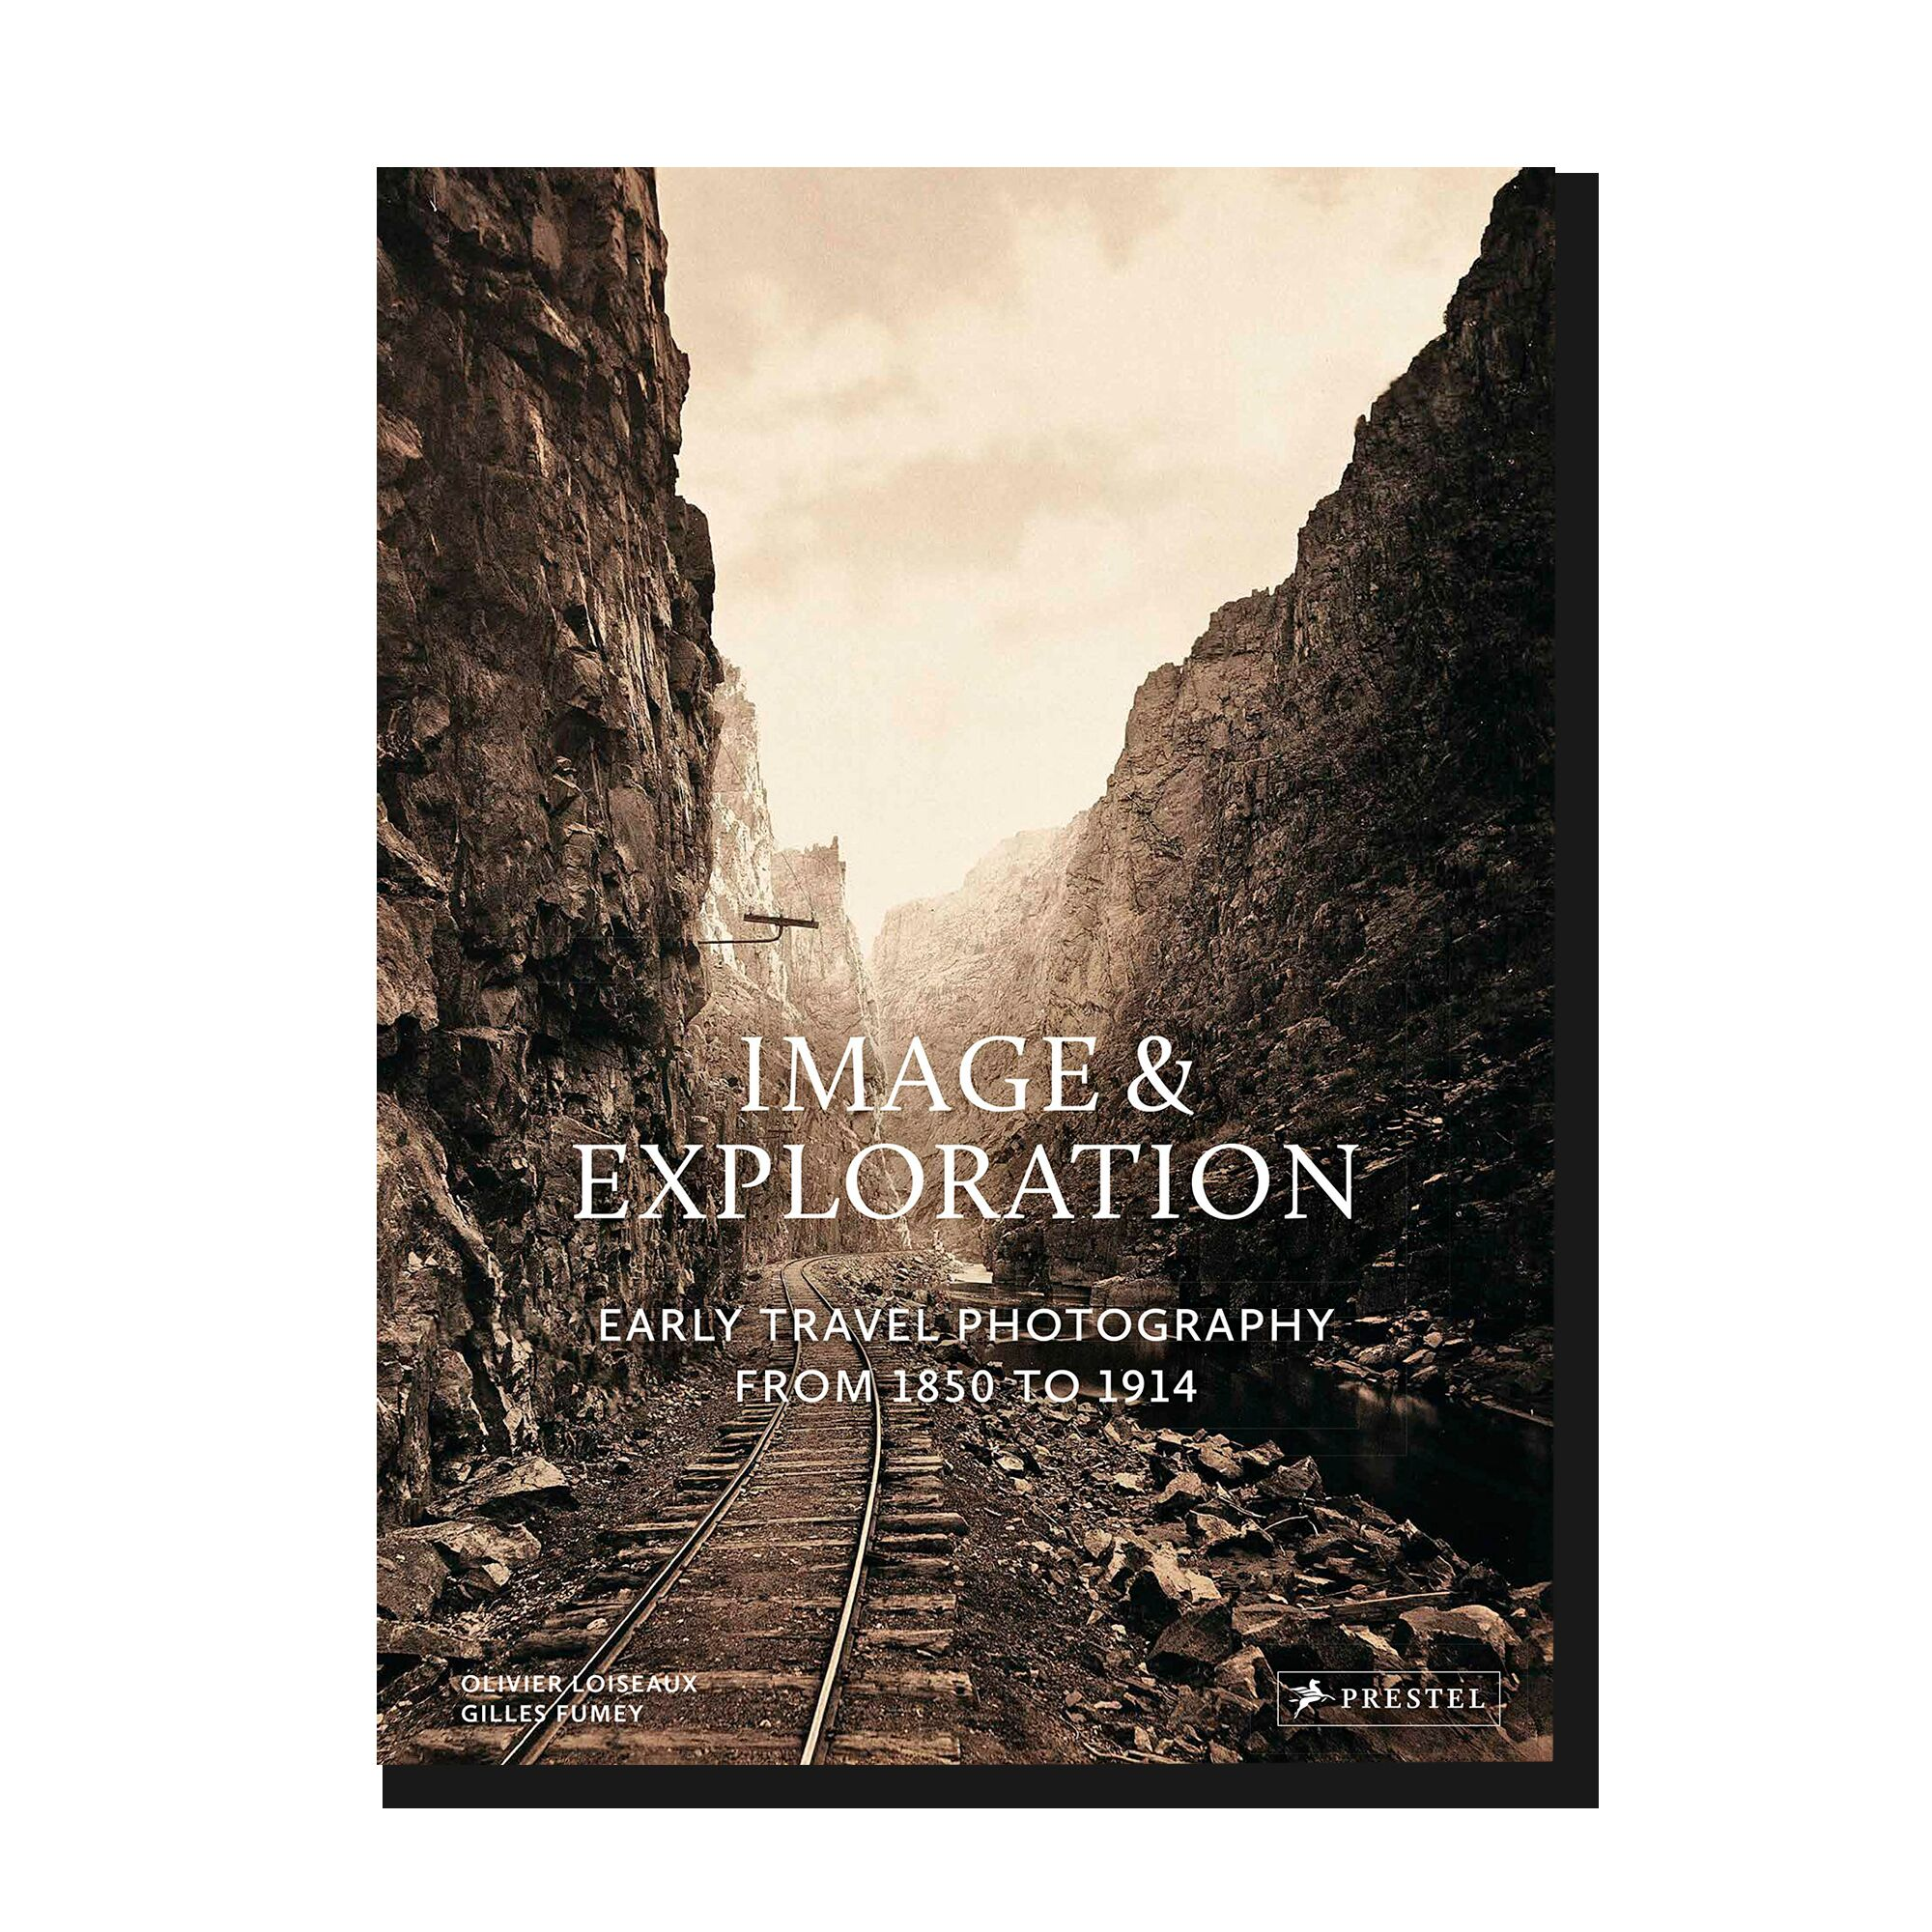 Image and Exploration Early Travel Photography from 1850-1914